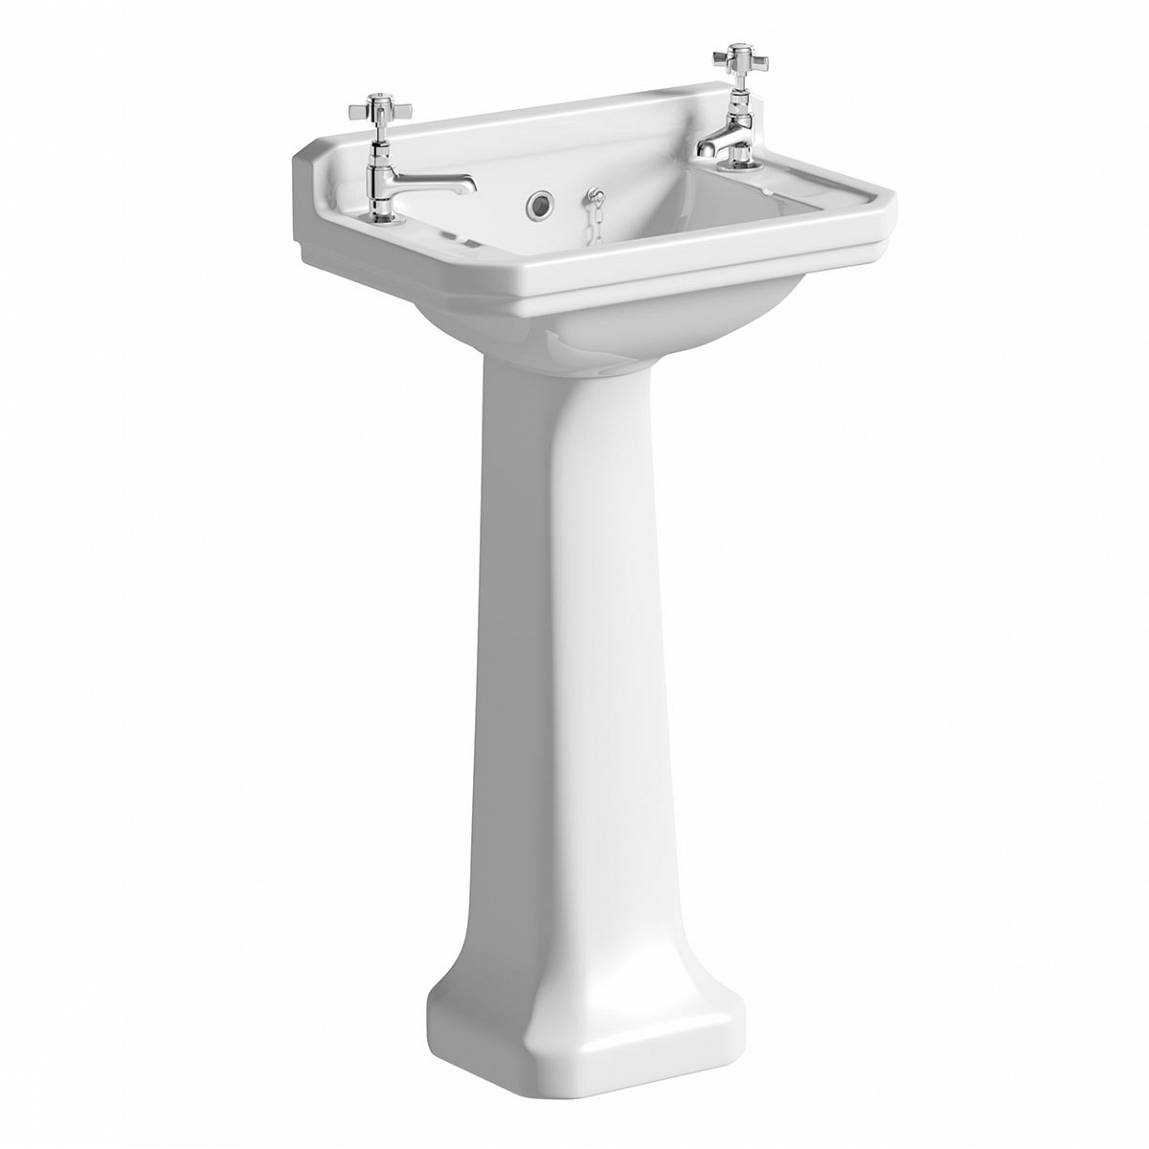 Image of Camberley 2TH Cloakroom Basin & Pedestal